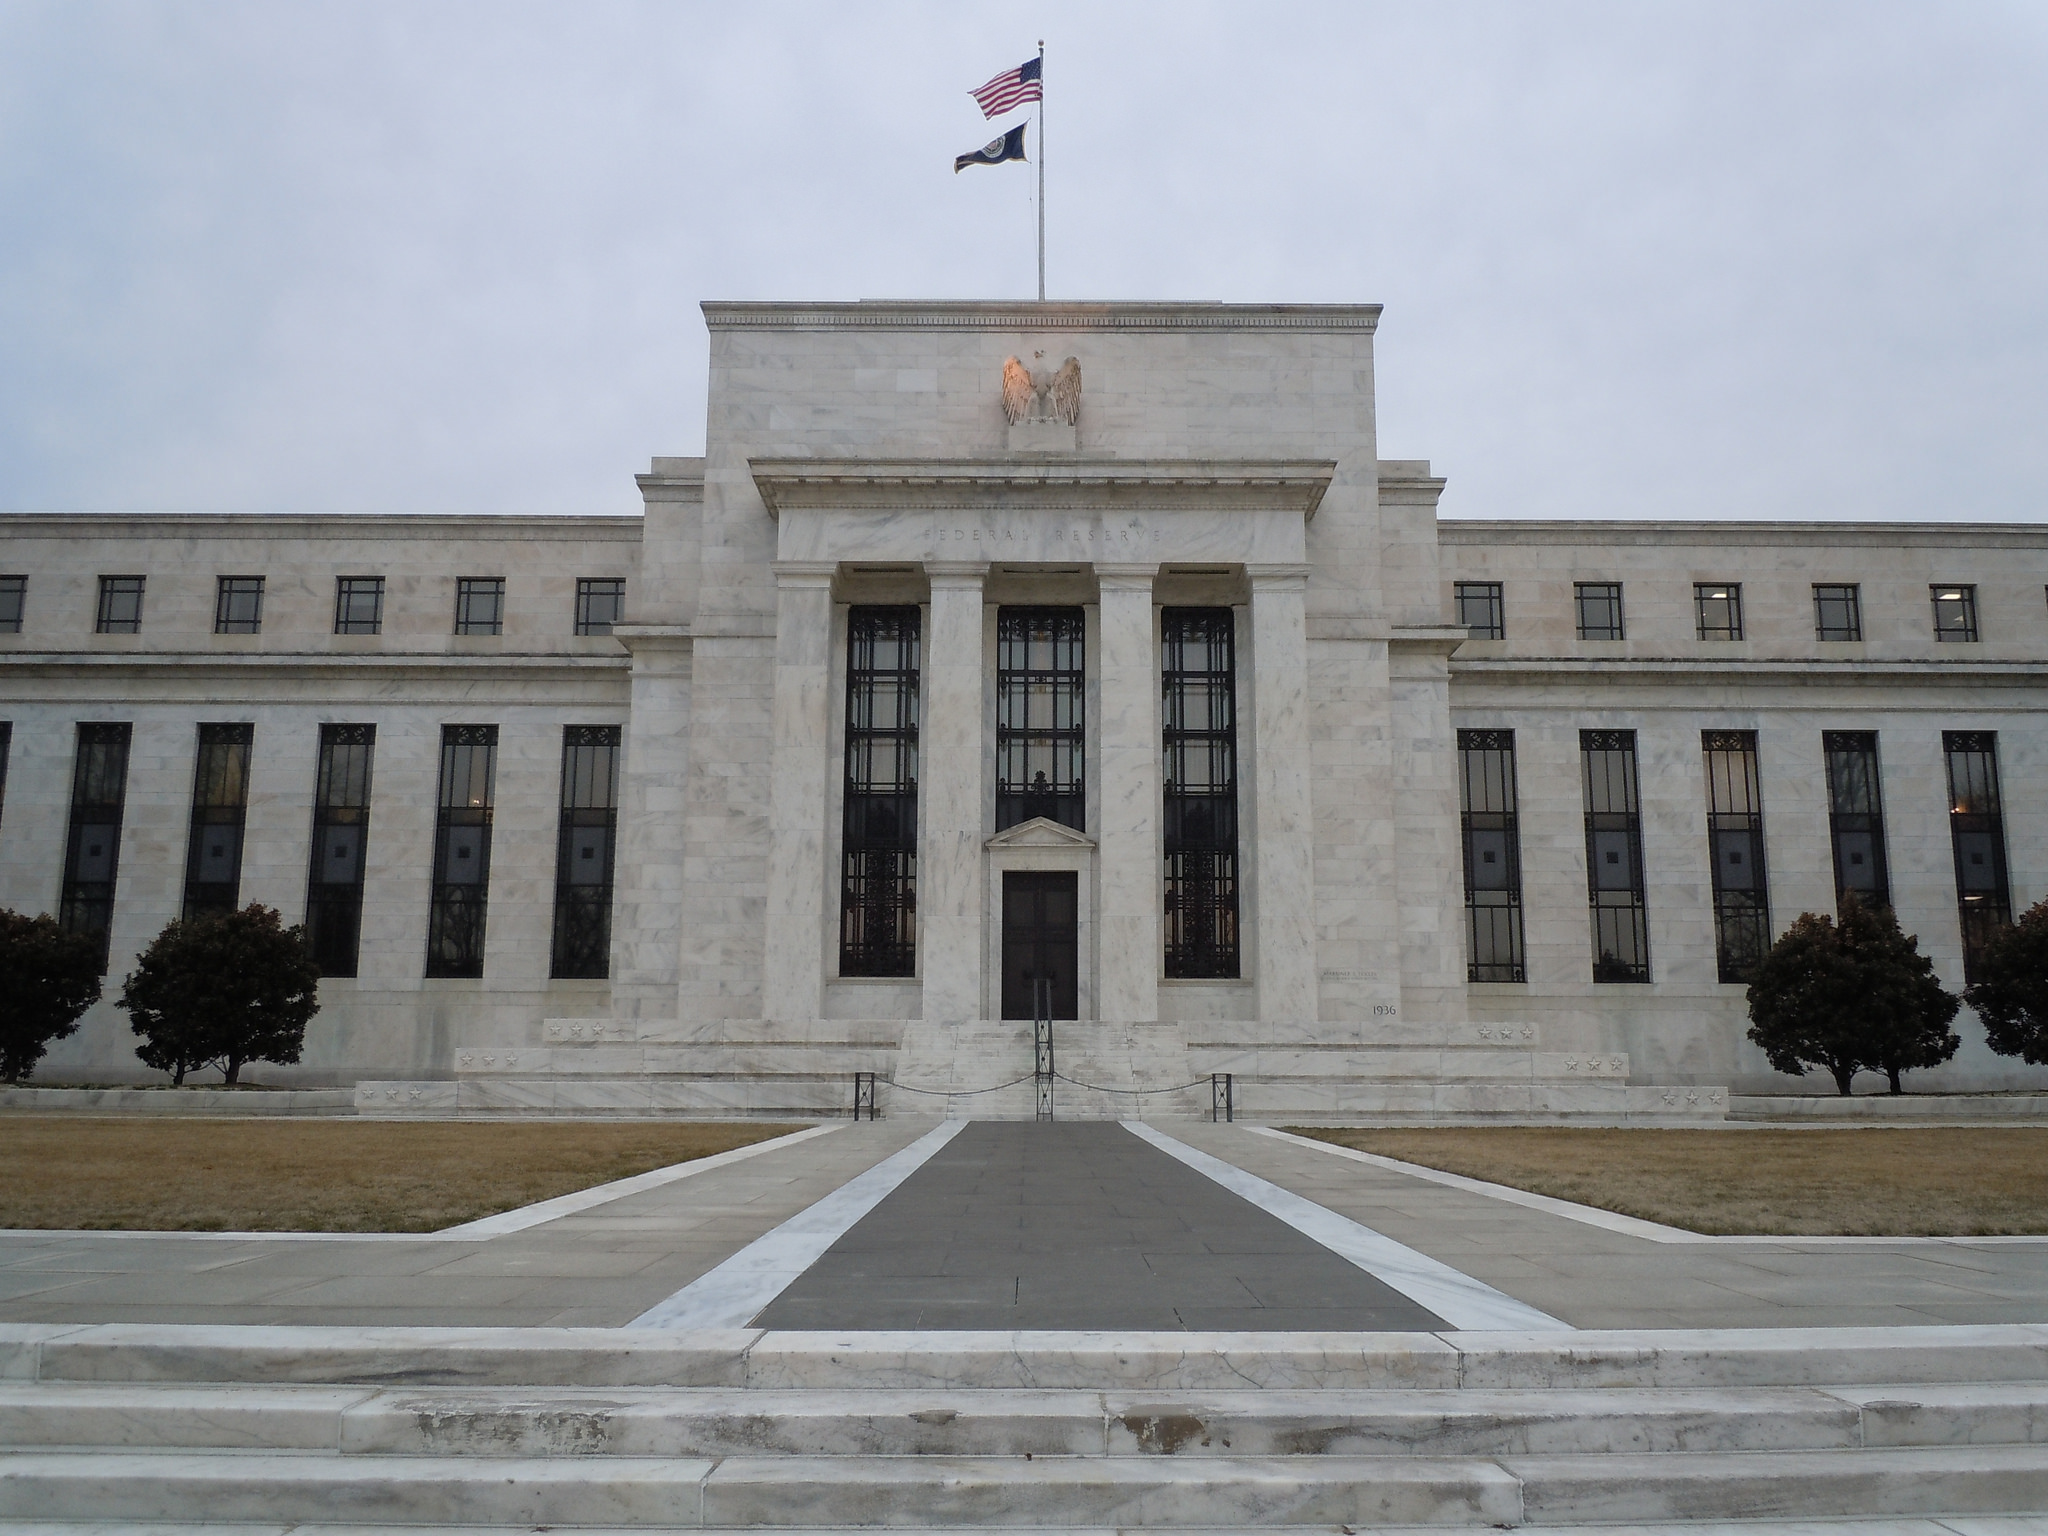 The US Federal Reserve headquarters in Washington, DC